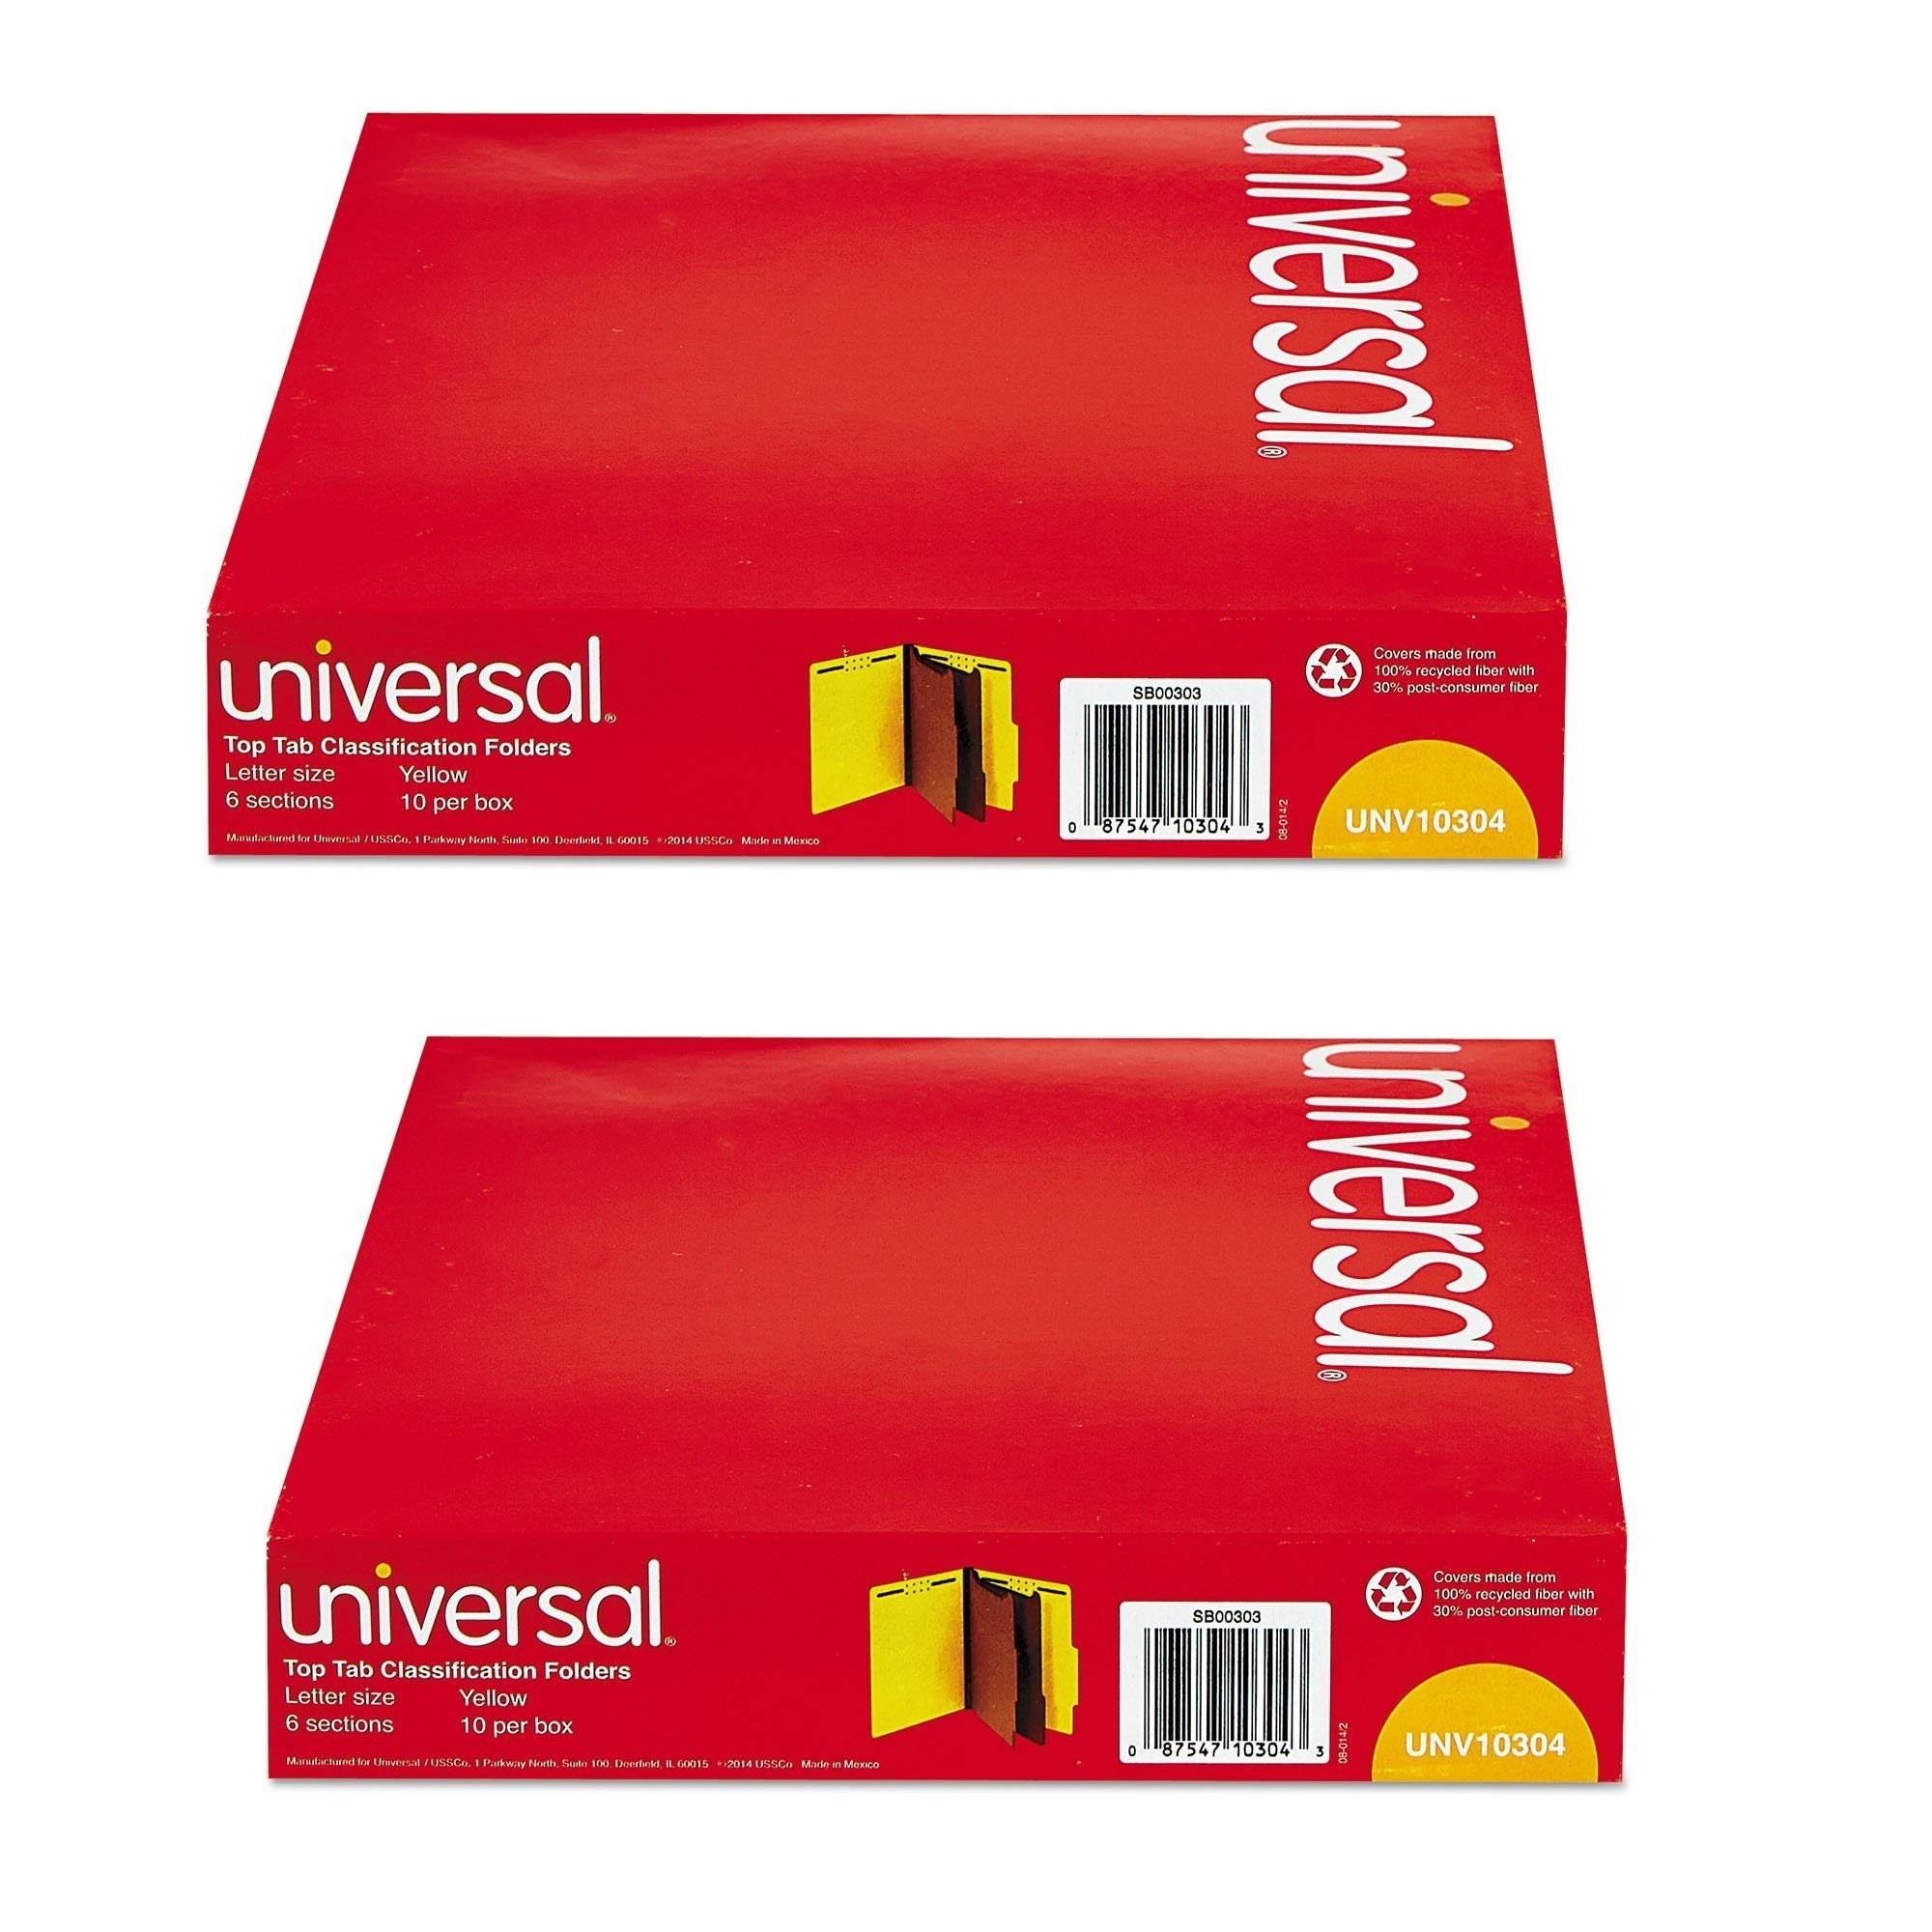 Universal Pressboard Classification Folders, Letter, Six-Section, Yellow, 10/Box (10304), 2 Pack by Universal